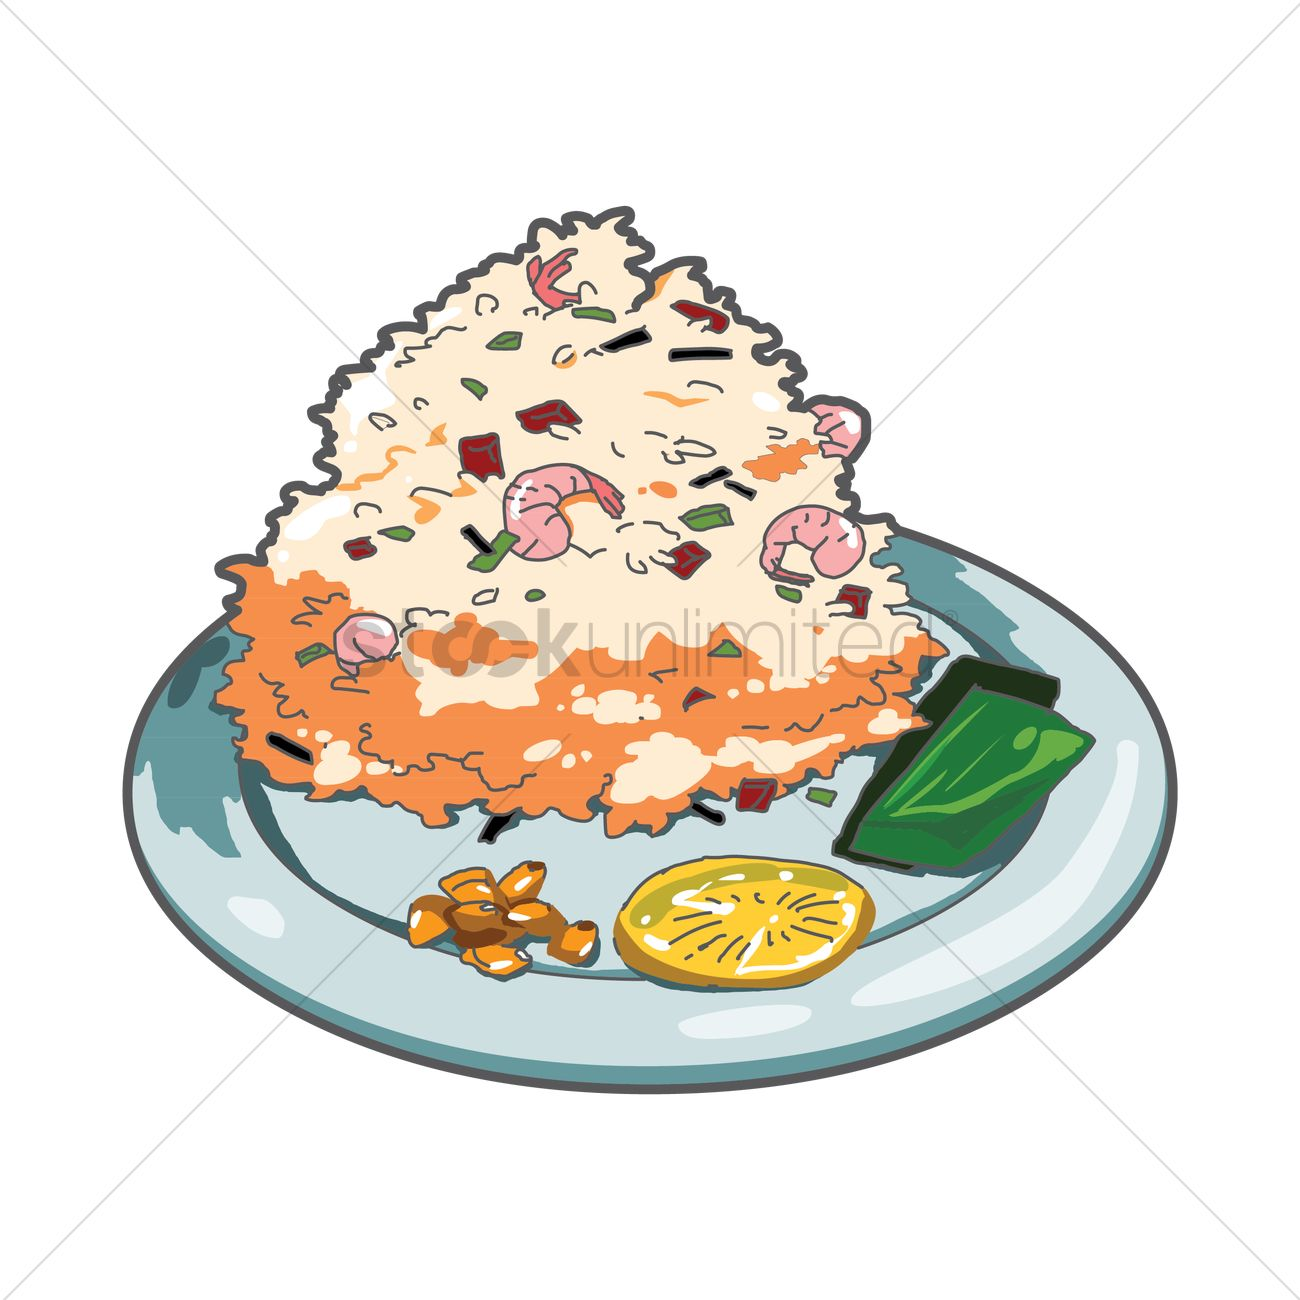 Fried Rice With Shrimps Vector Image 1506490 Stockunlimited